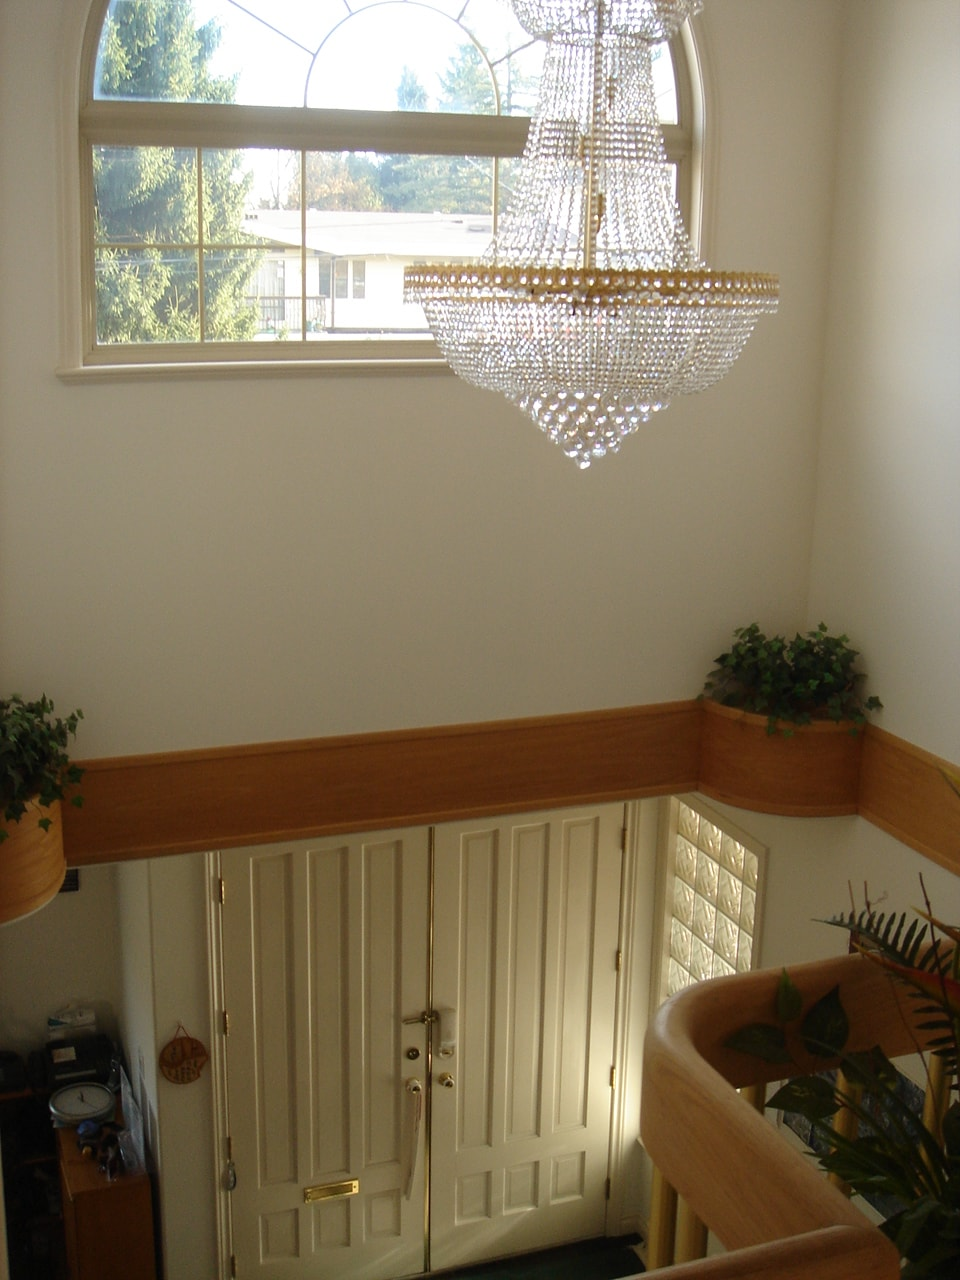 Beautiful vaulted ceiling entrance giving you a fresh bright morning!